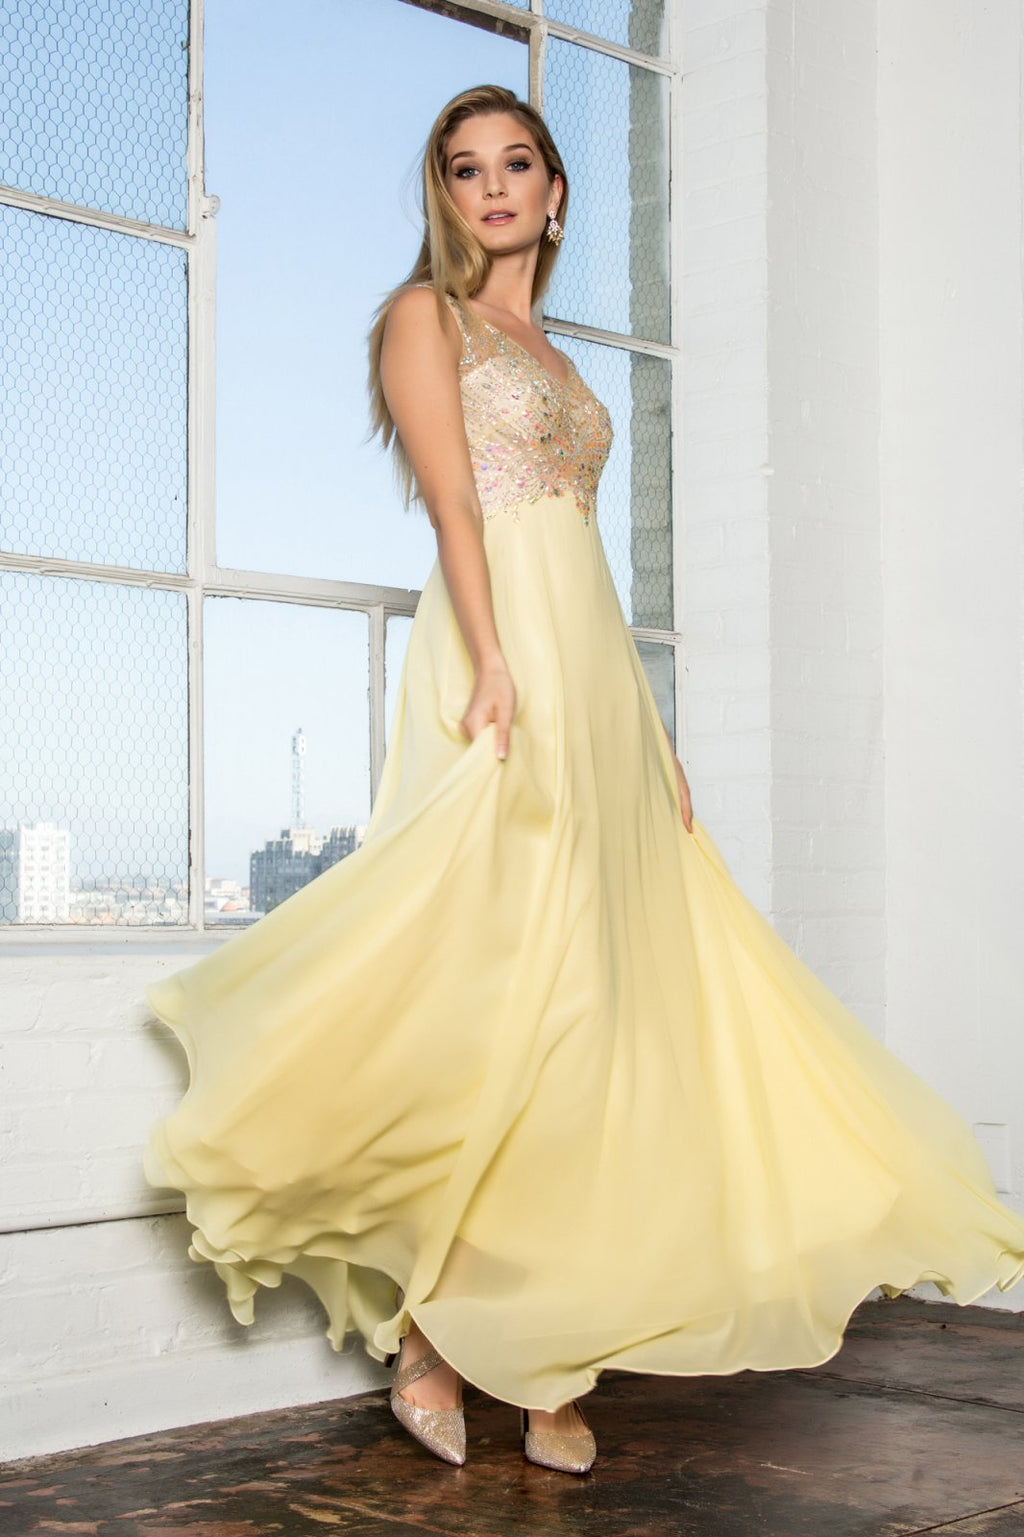 Light Yellow V-Neck Chiffon Floor Length Dress with Jewel Embellished Bodice